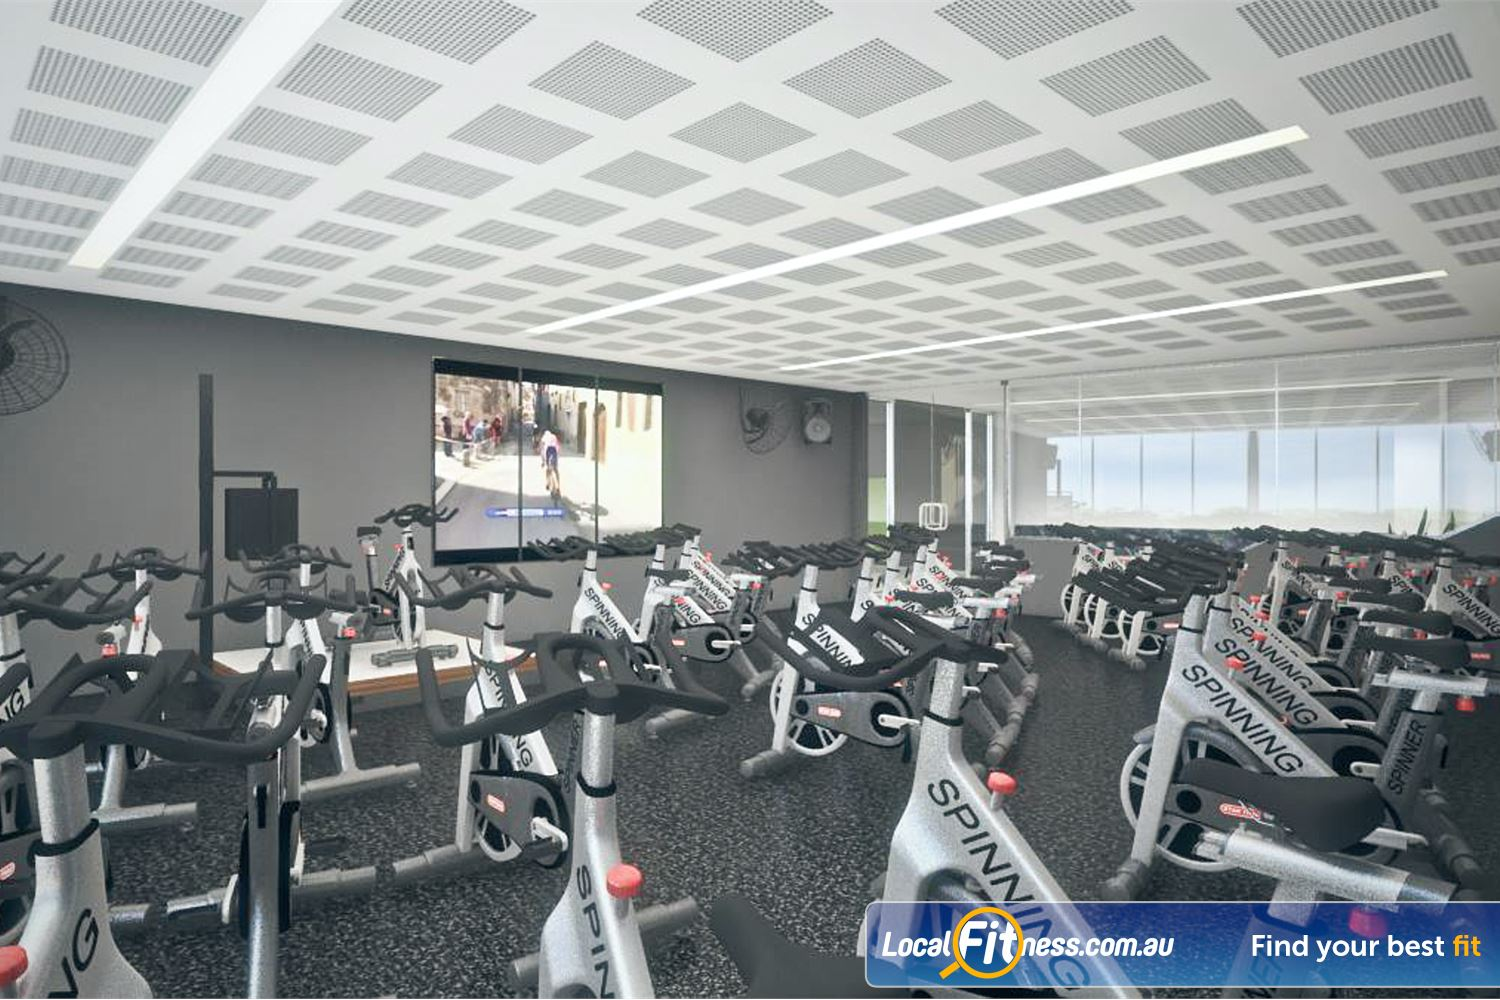 Goodlife Health Clubs Near Wattleup Dedicated Success spin cycle studio equipped with virtual classes.